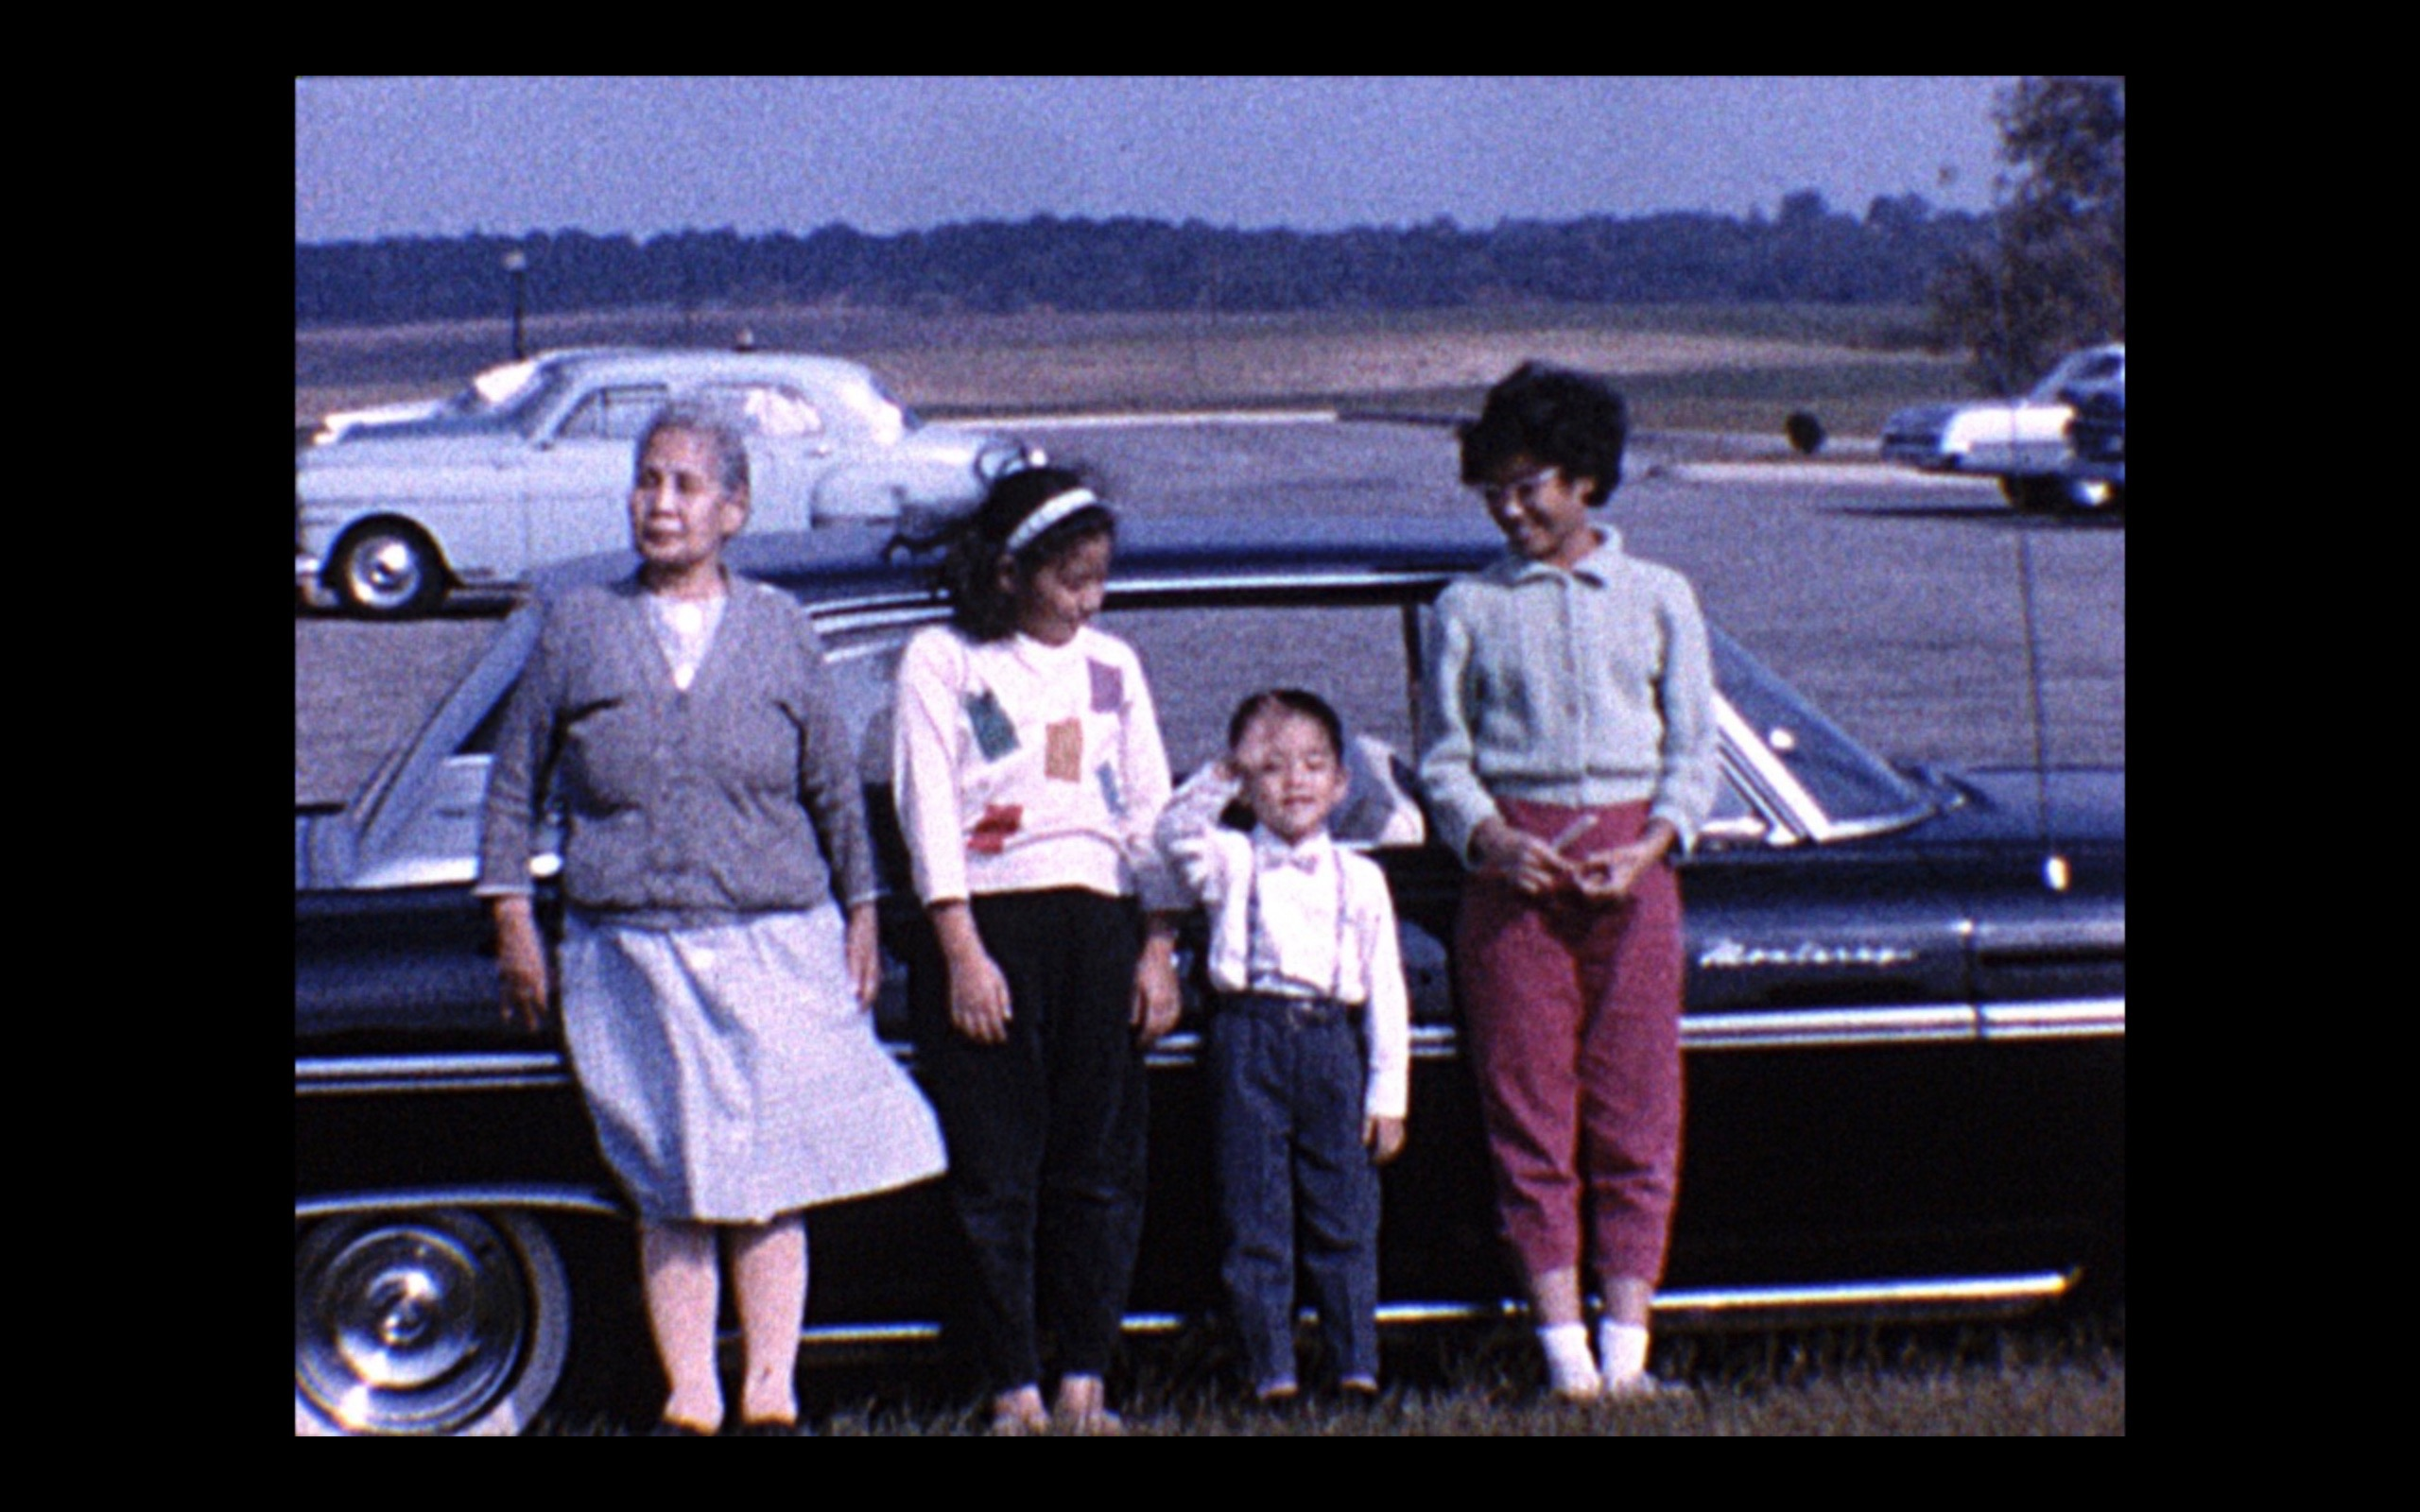 Your family home movies could be featured in a new PBS